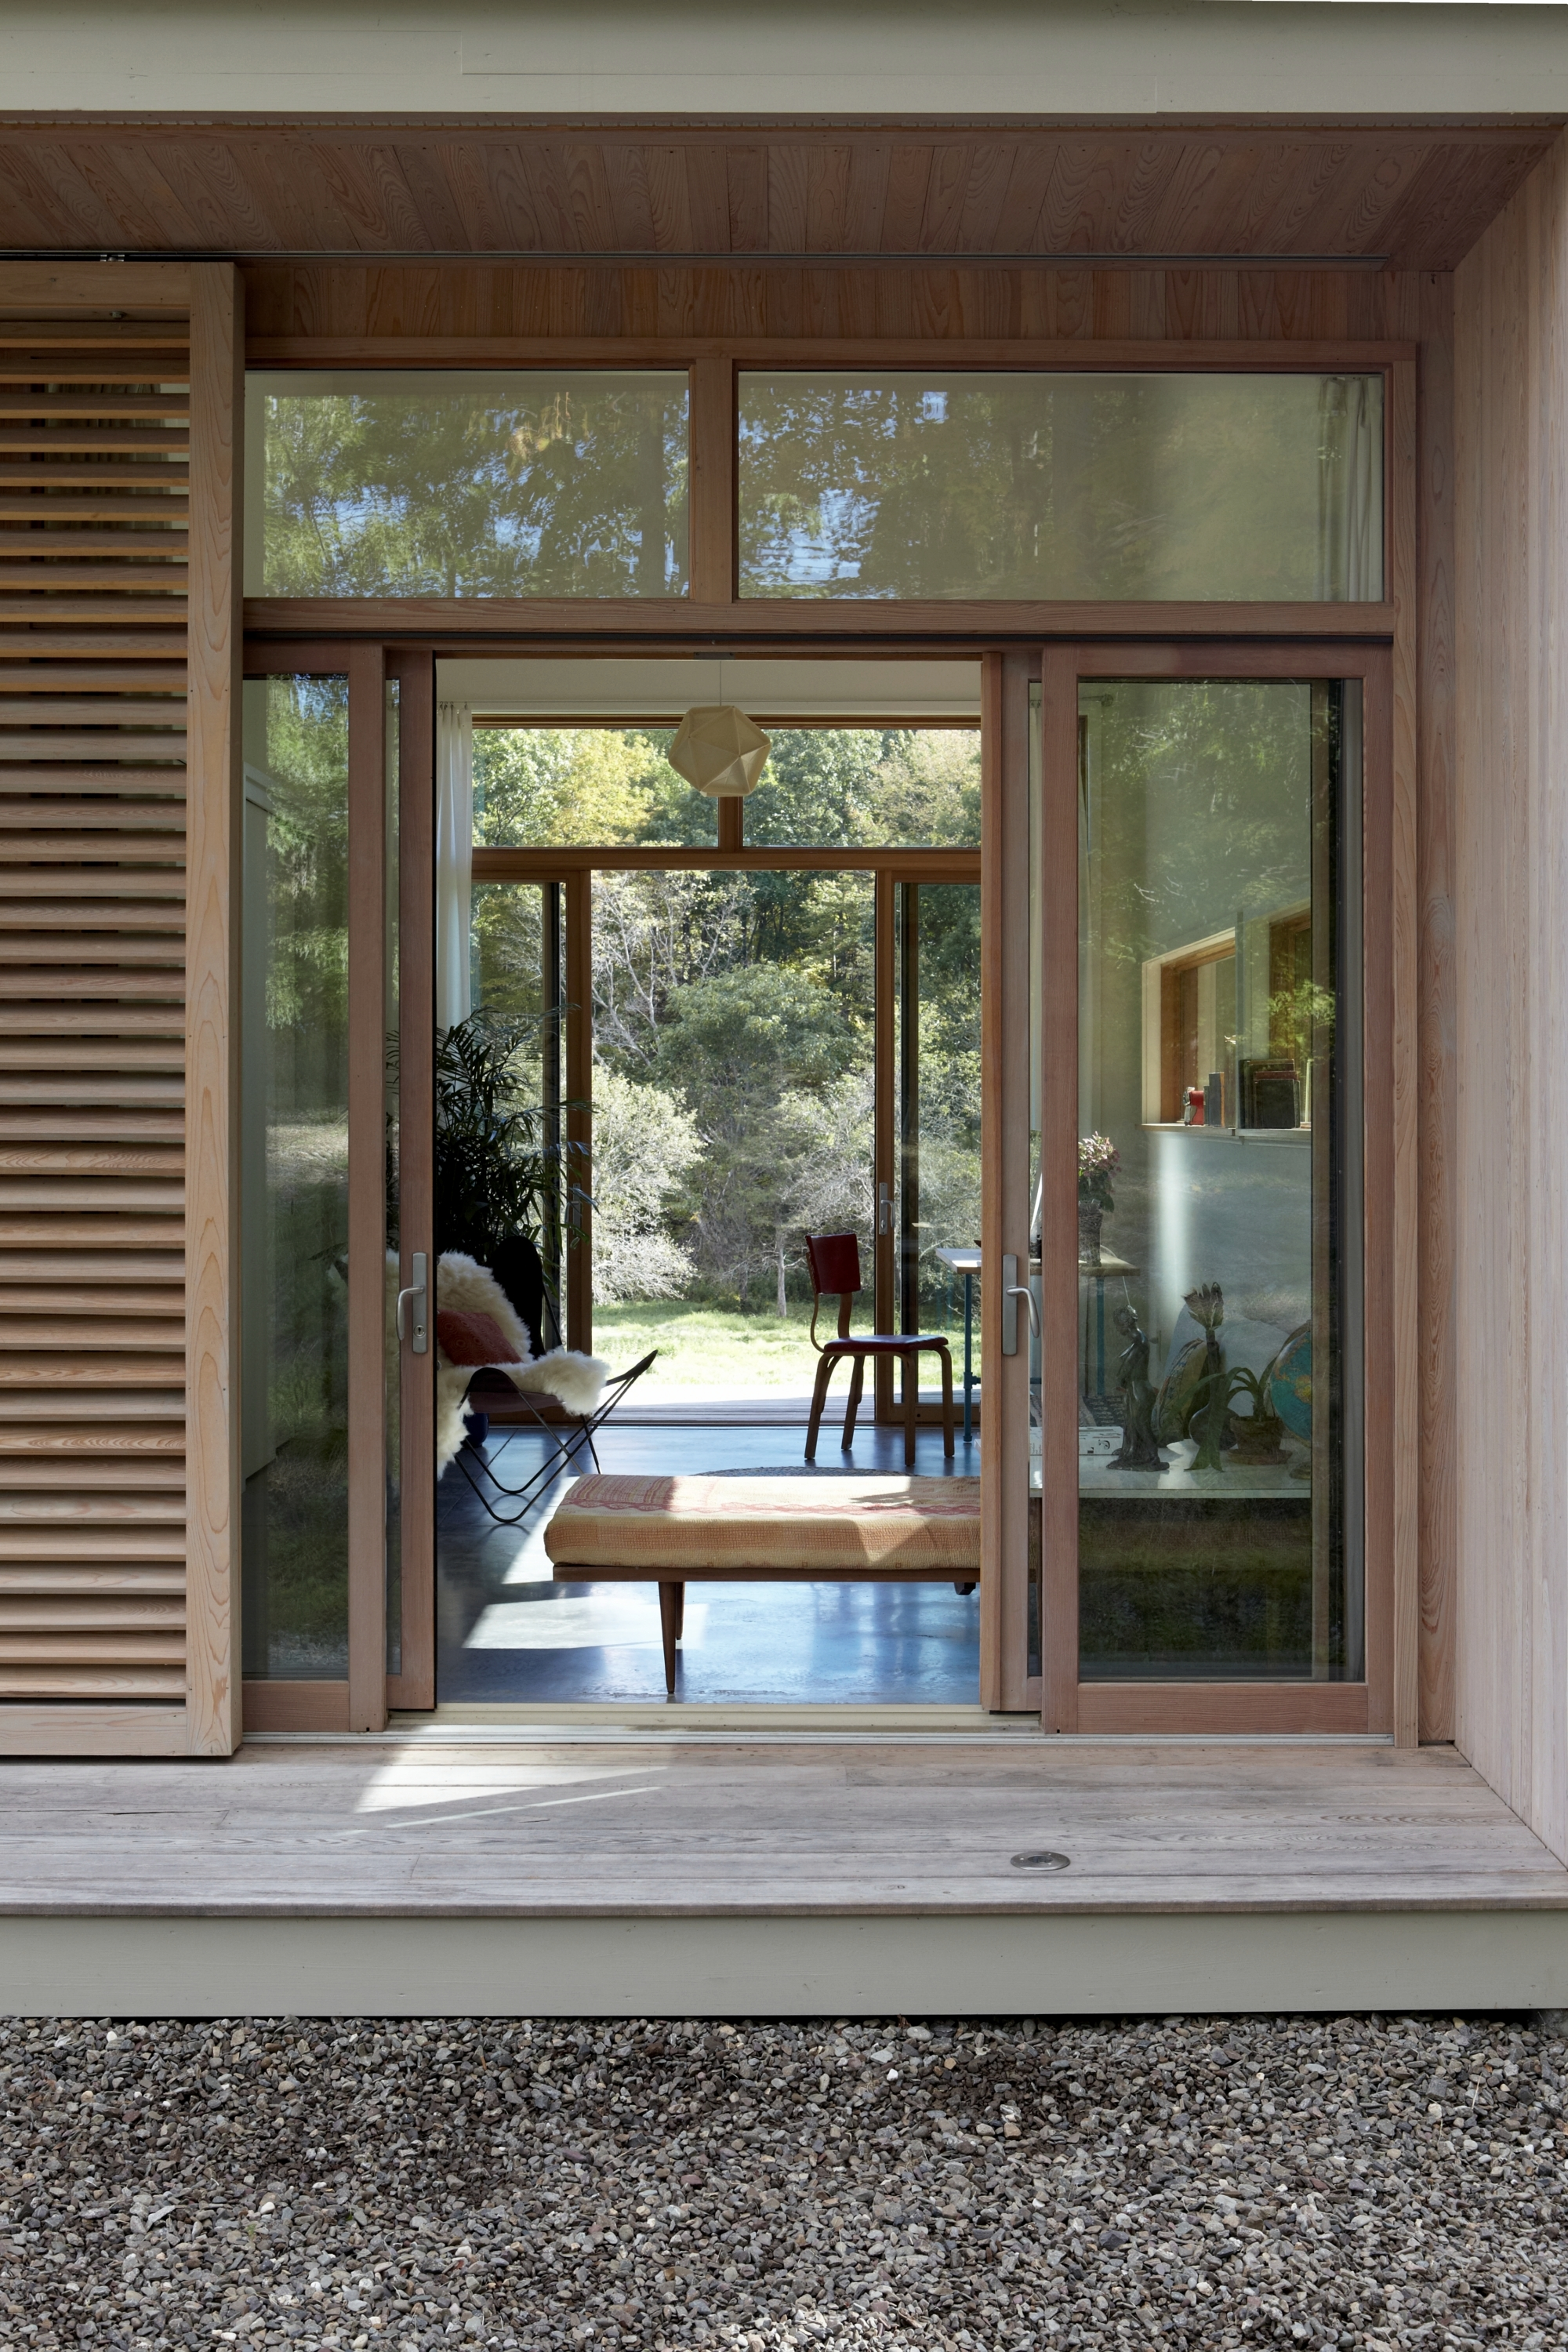 Confluence House Exterior Looking into House